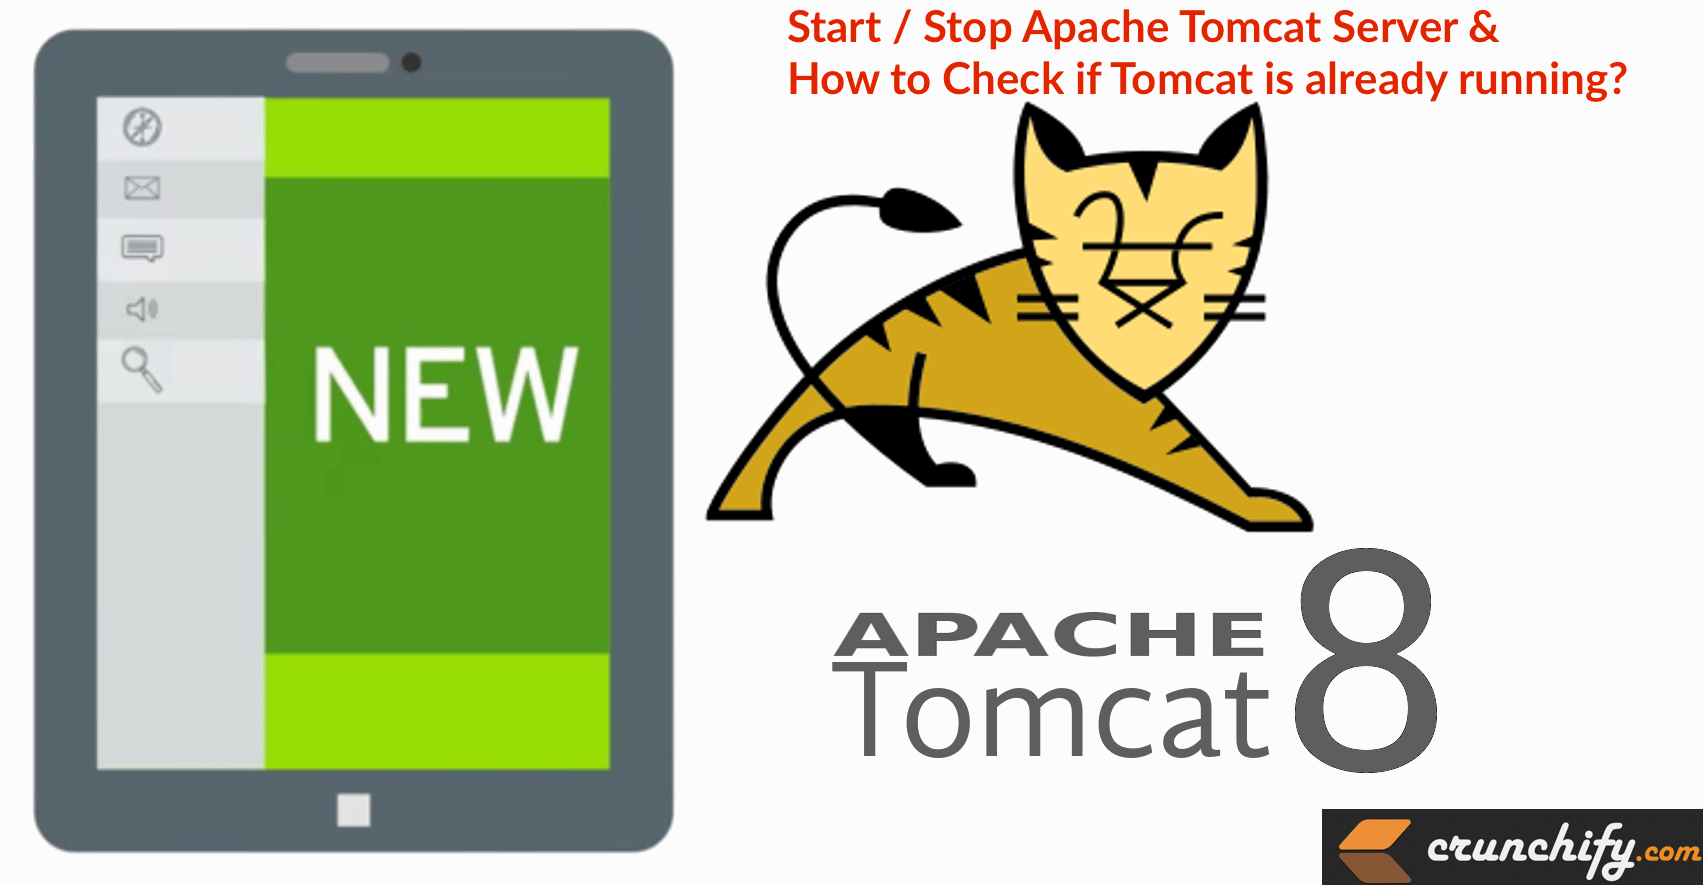 How to Start Stop Apache Tomcat via Command Line? Check if